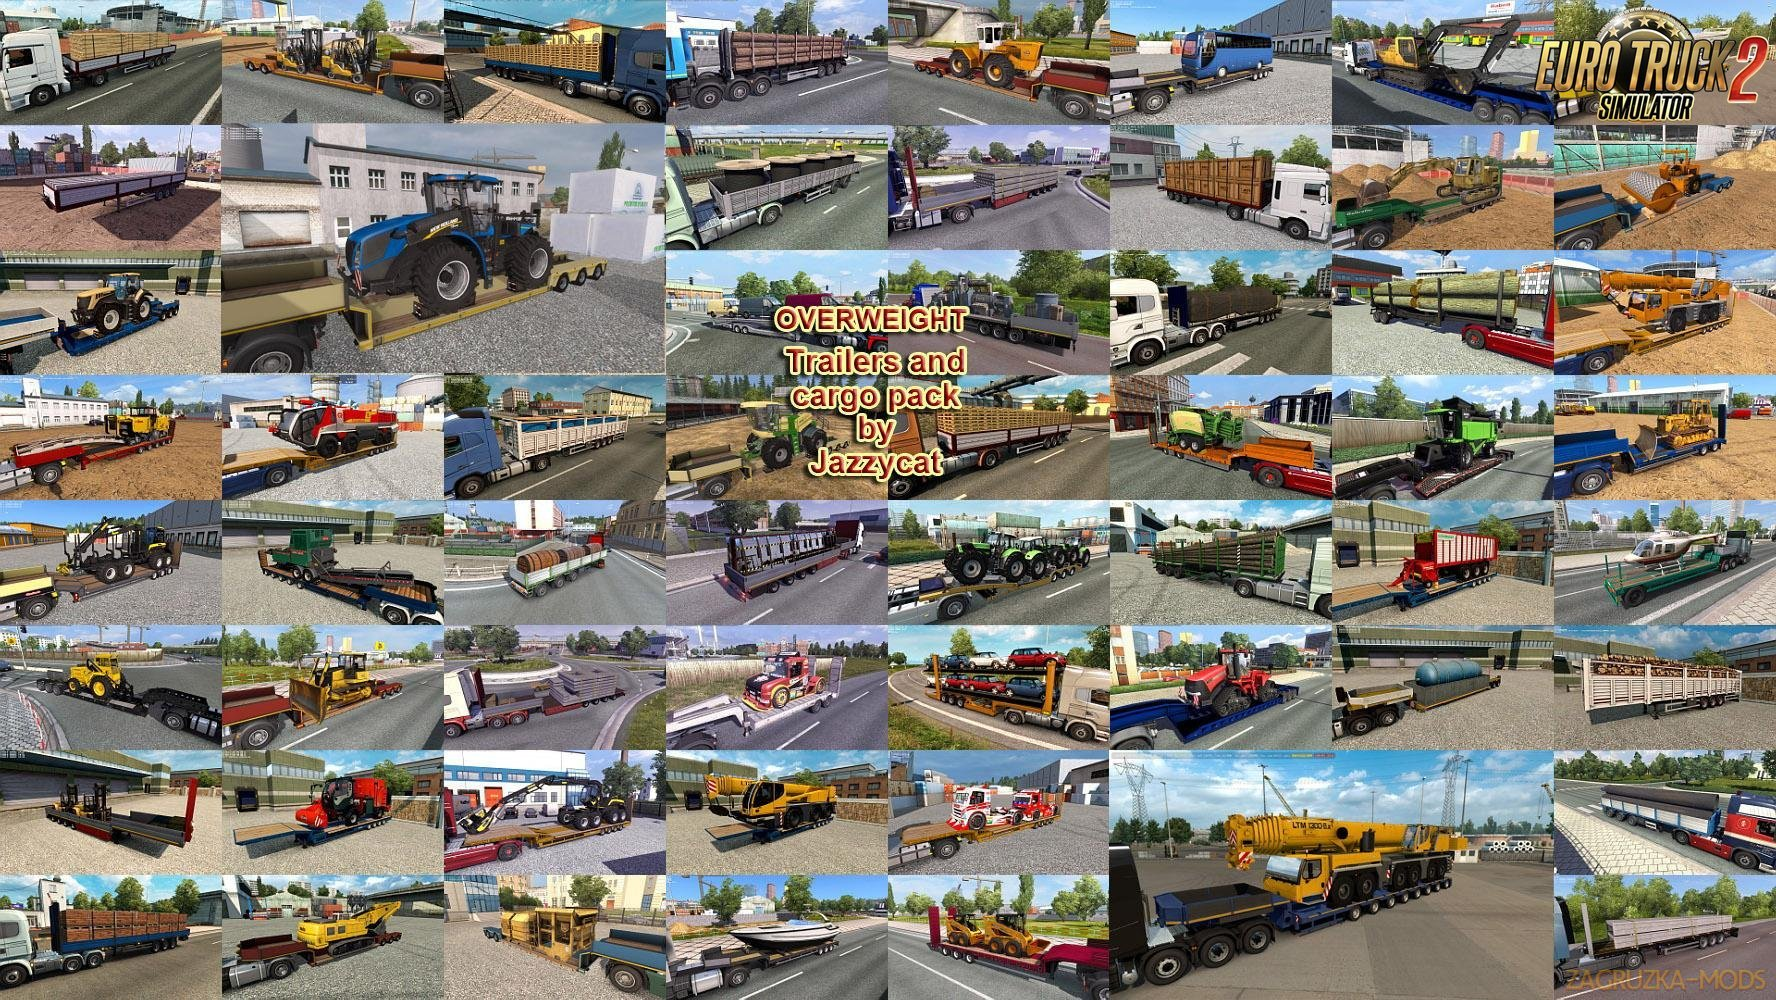 Overweight Trailers and Cargo Pack v7.3 by Jazzycat